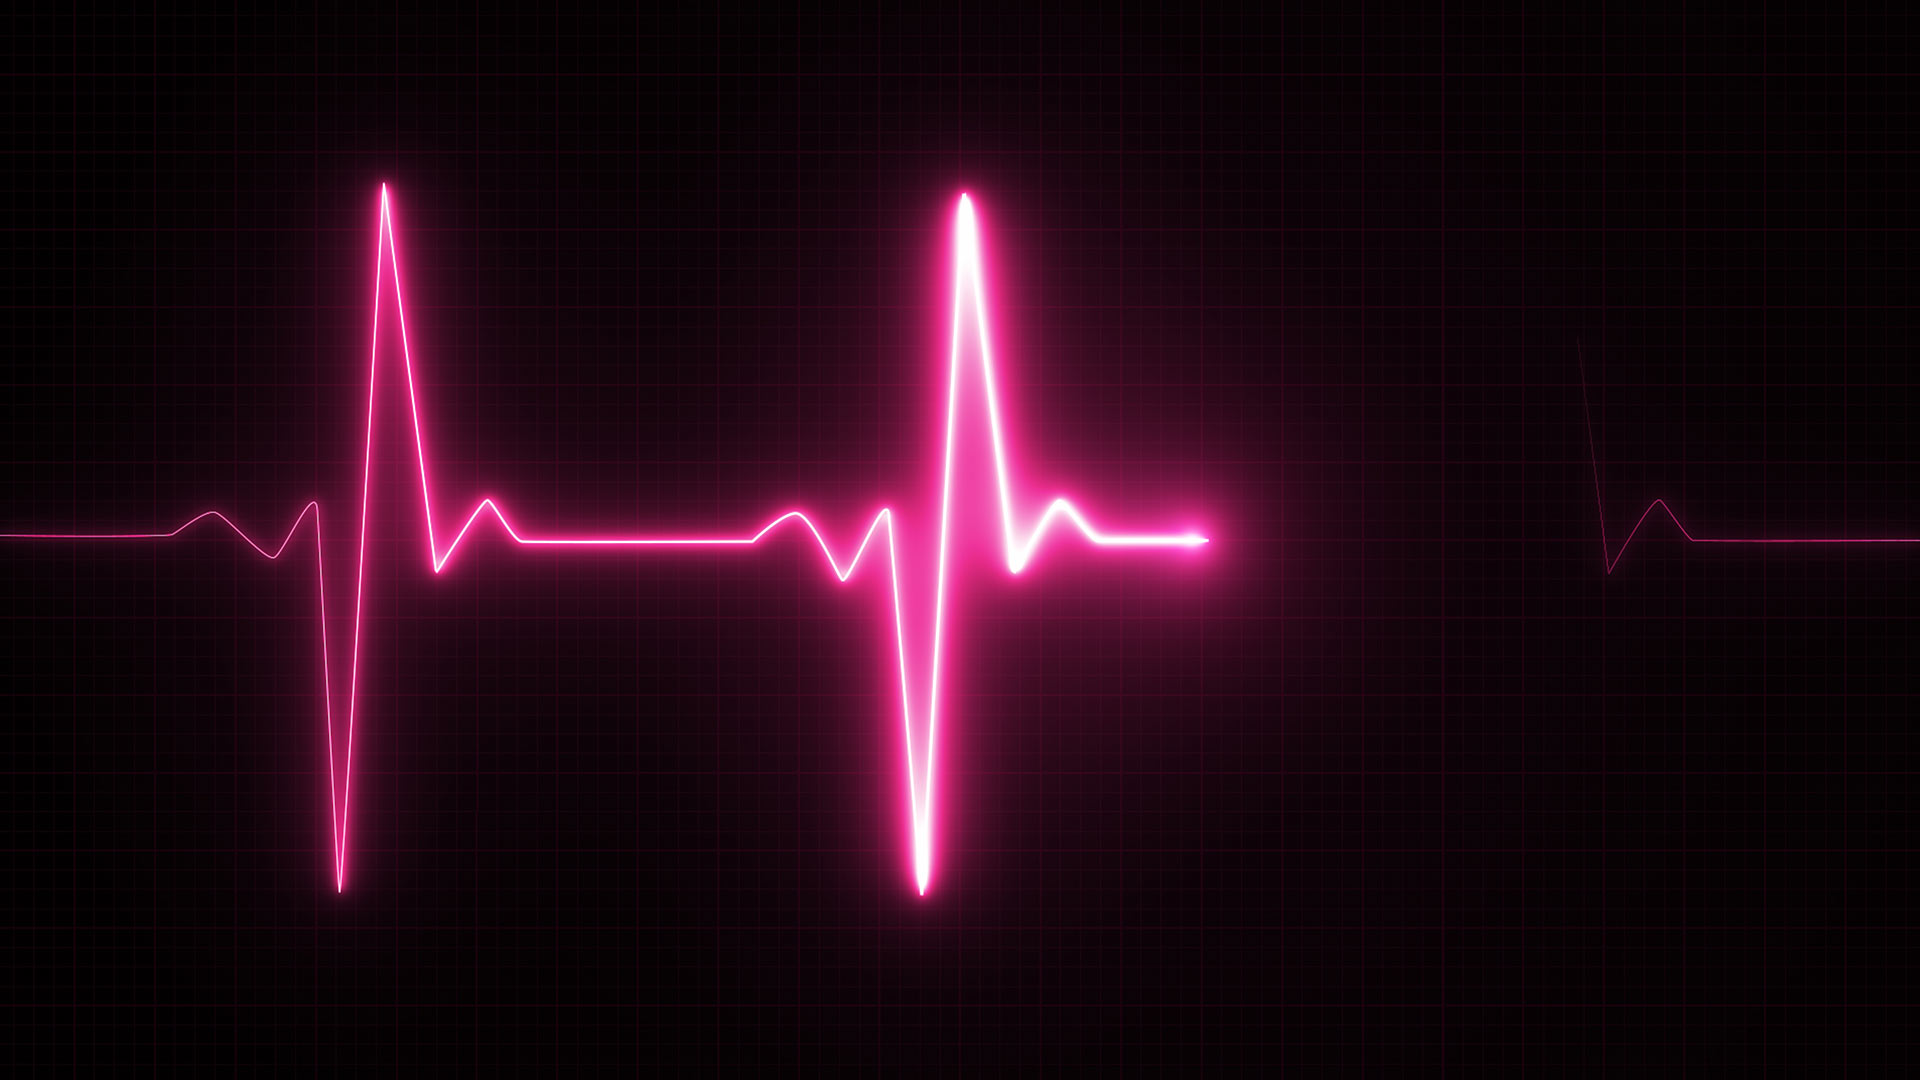 pink heart rate on monitor